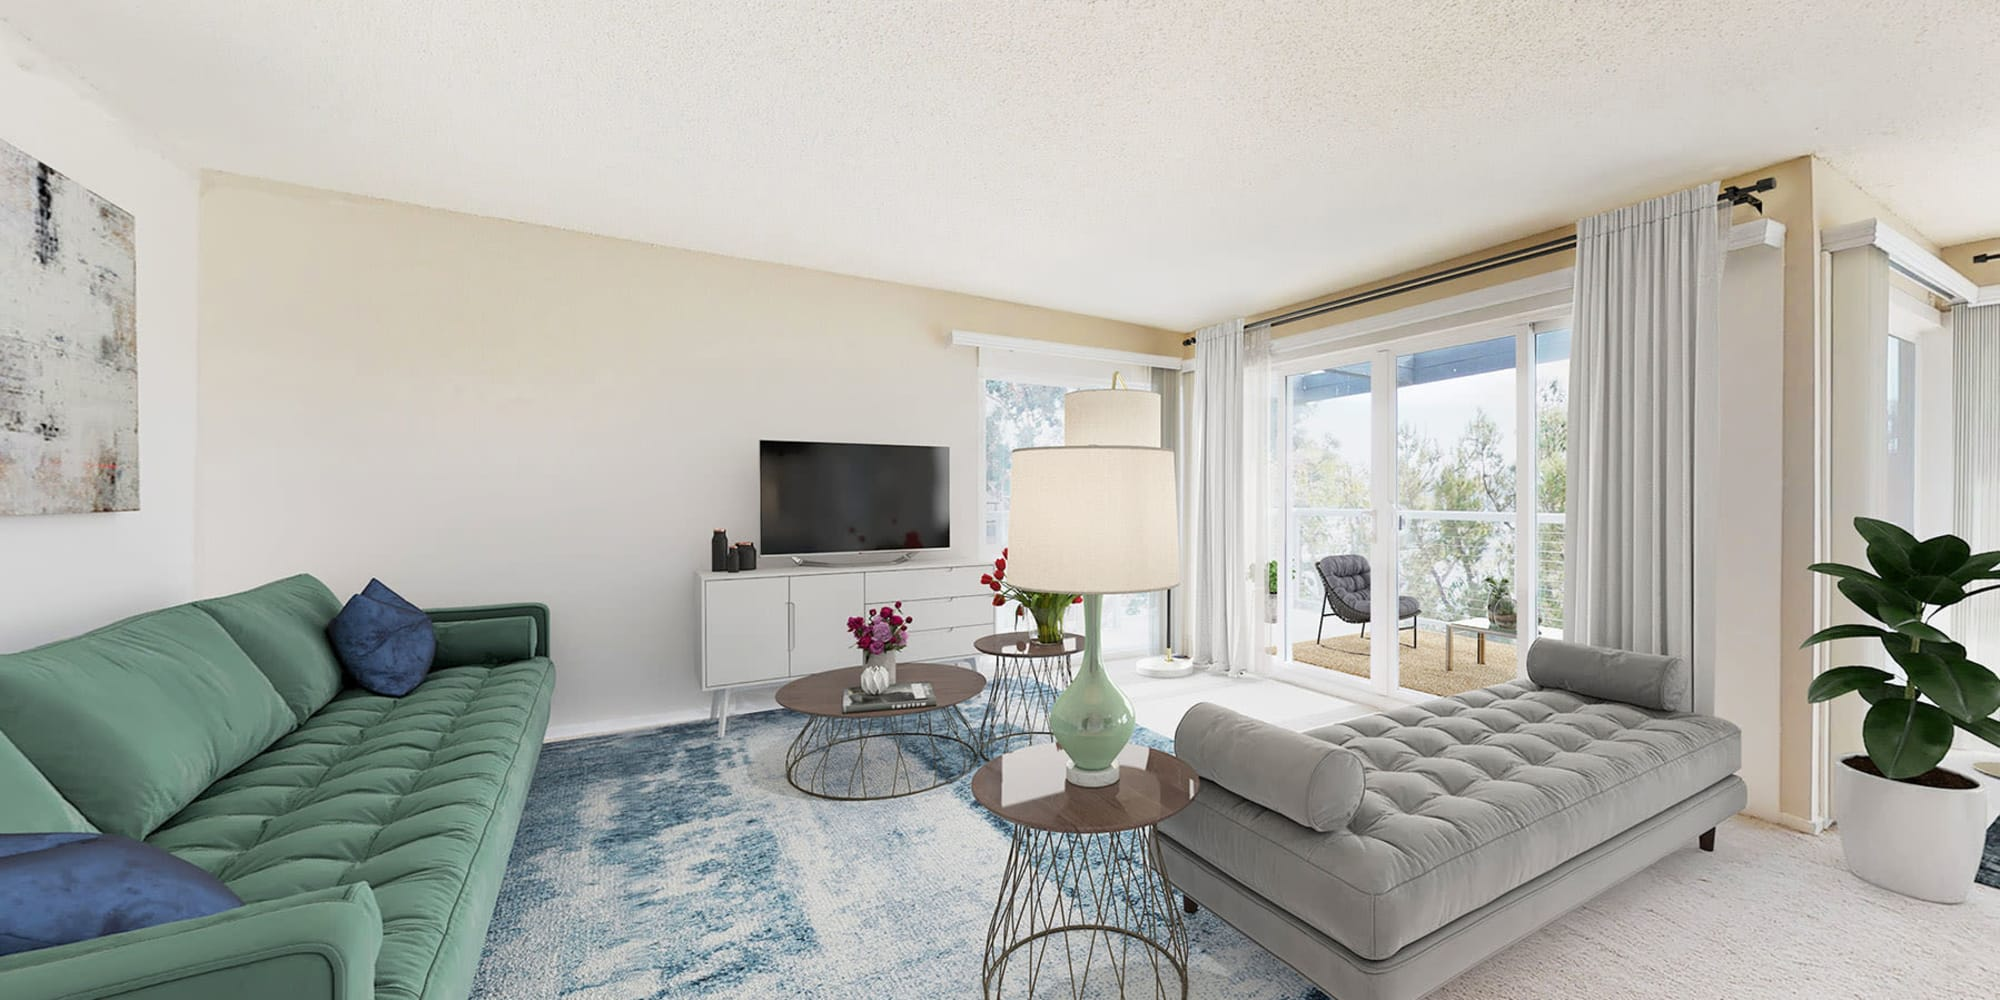 Stylish and modern open-concept living space in a spacious apartment home at The Tides at Marina Harbor in Marina del Rey, California